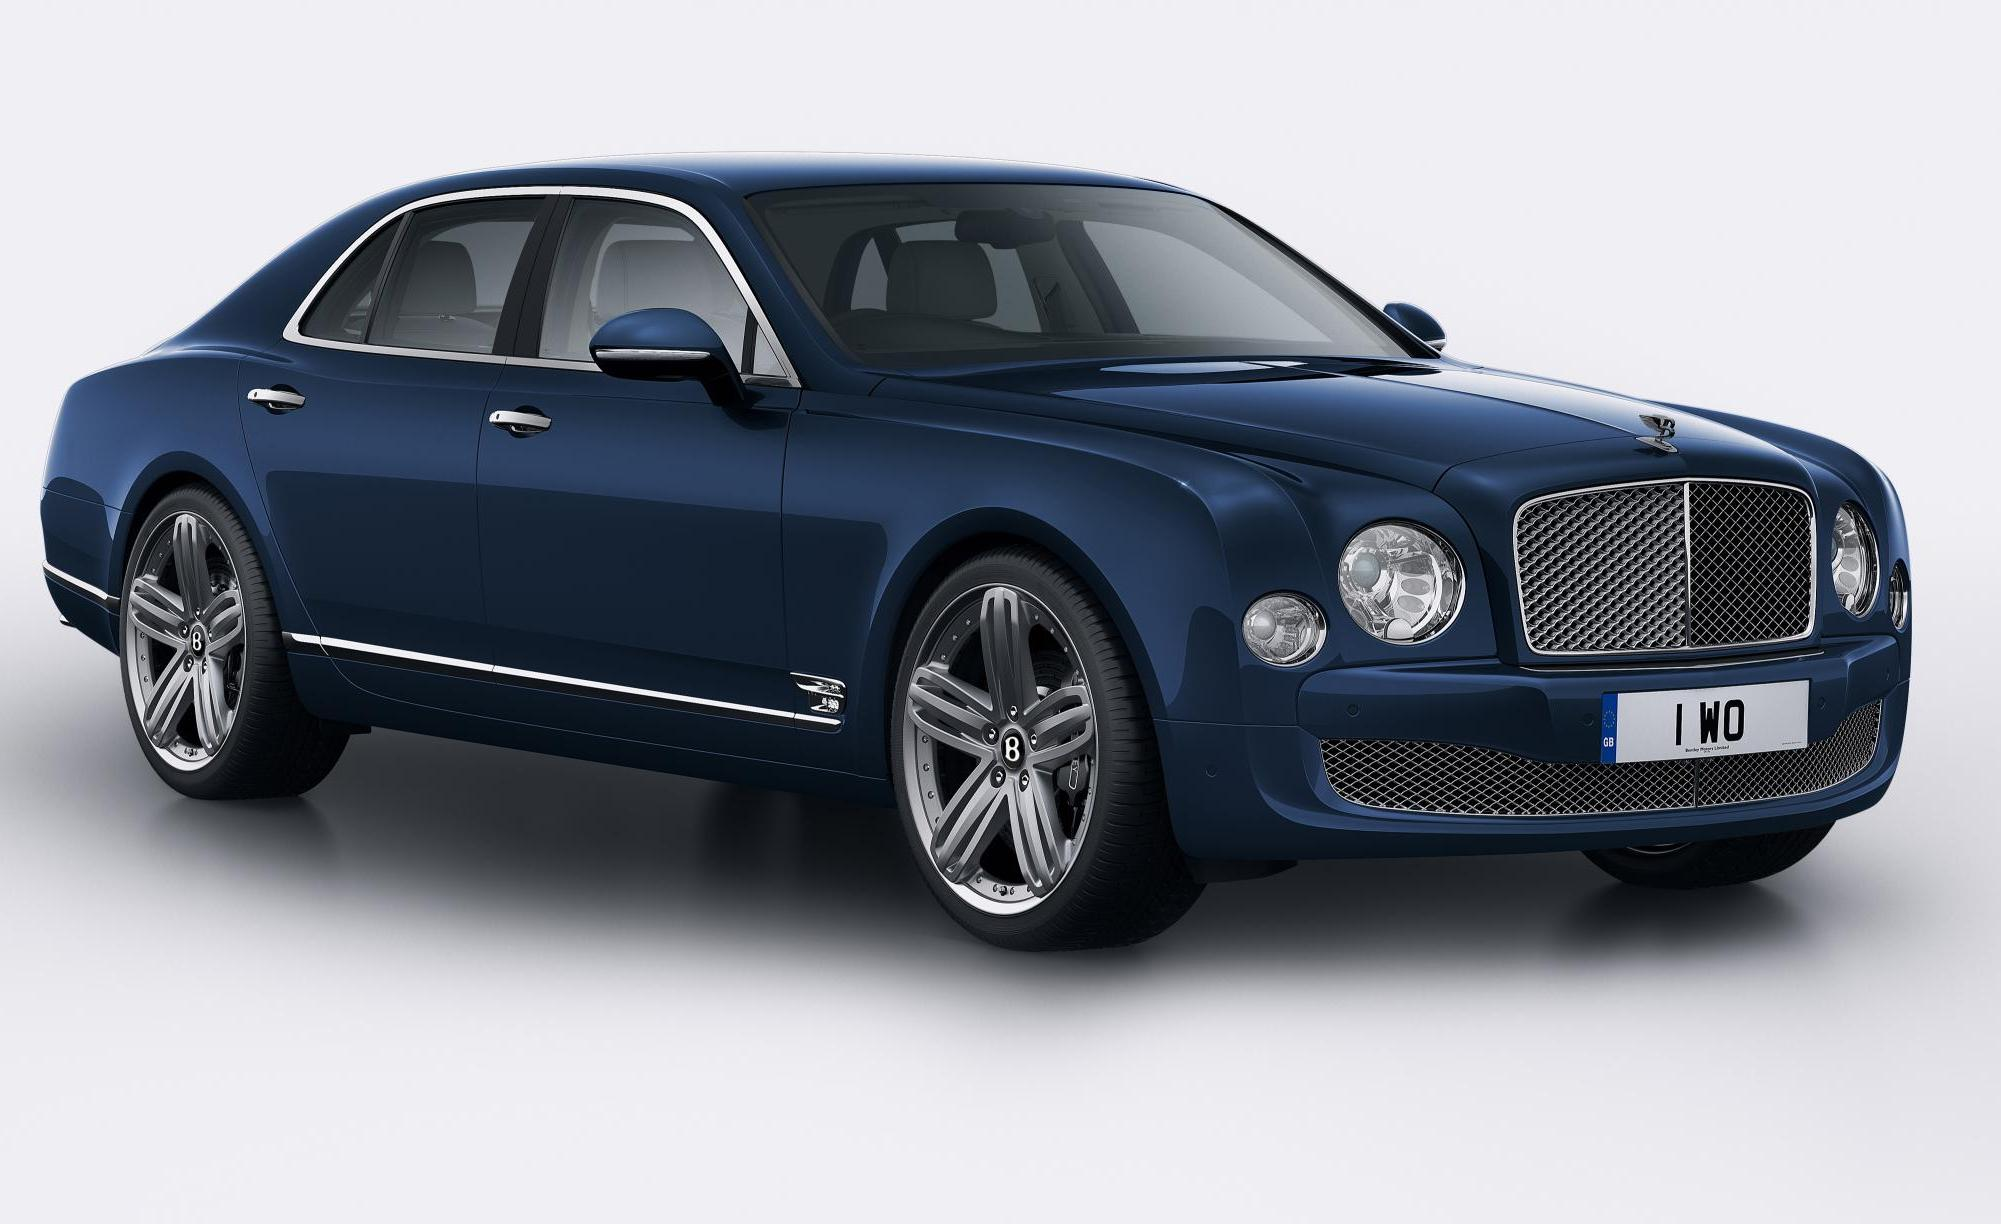 Bentley Mulsanne 95 exclusive edition